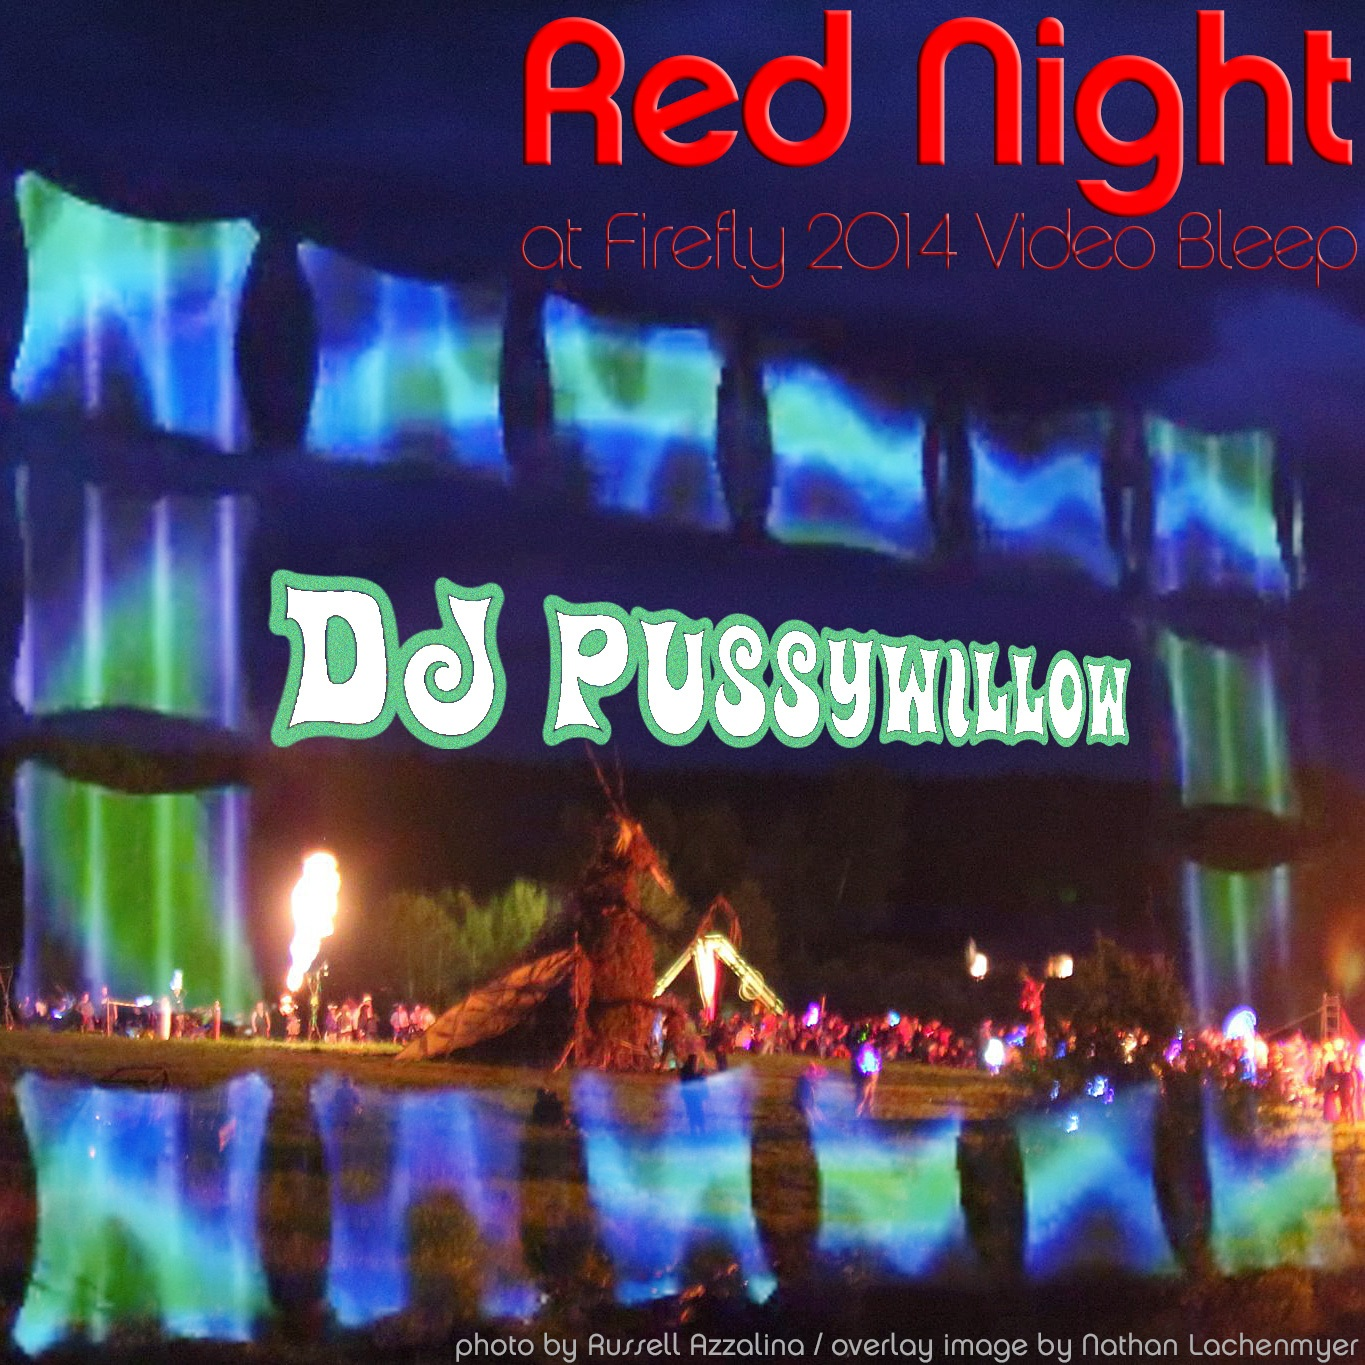 Red Night at Video Bleep - Firefly, July 2, 2014